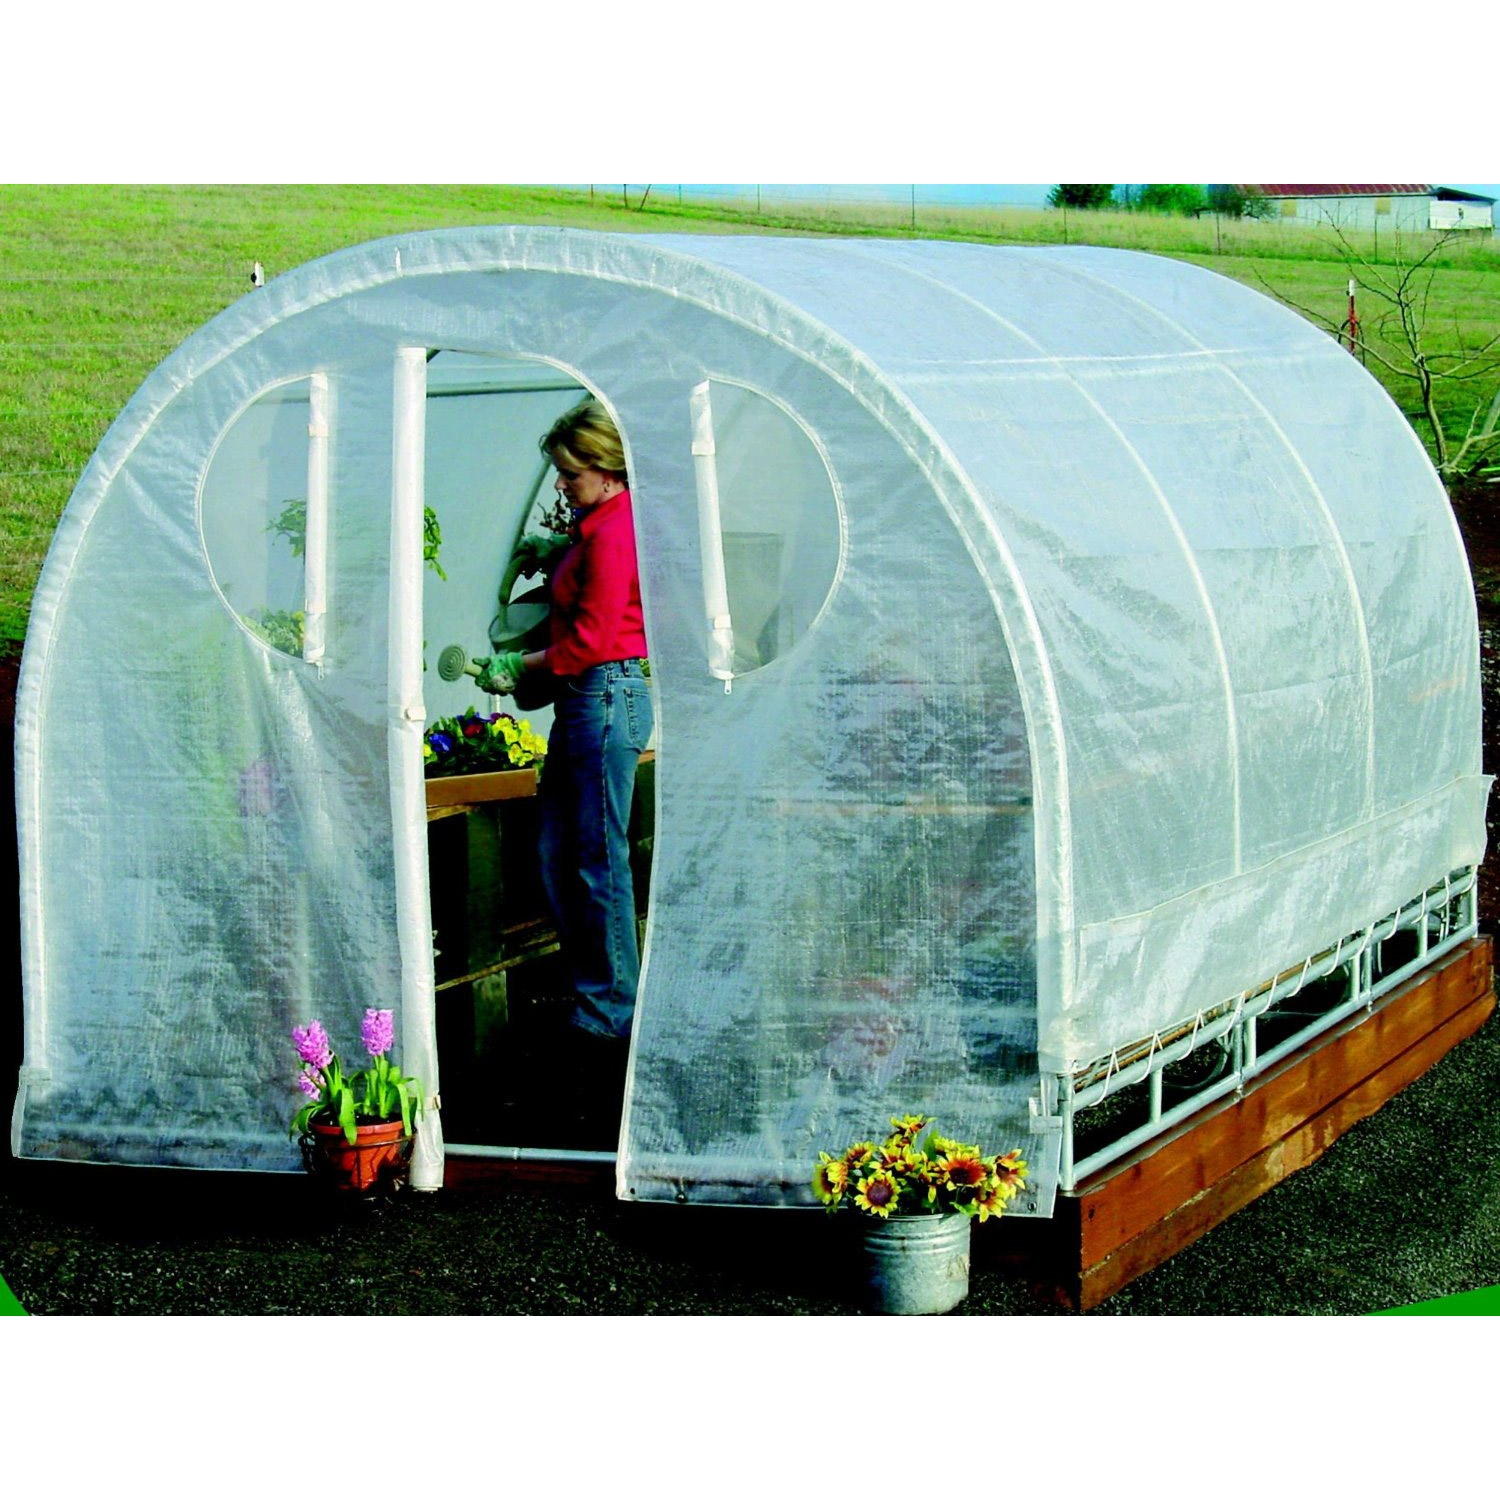 Polytunnel Hoop House Greenhouse (8' x 12'), PTHSG8X12 :  Designed as the highest quality, most compact, space saving greenhouse packaged in a retail box. This Polytunnel hoop-house cold-frame style High-Tunnel greenhouse features a space saver design.  The modern greenhouse offers all of the same quality, workmanship, and results as the Commercial Series Green House while appealing to beginner, novice, and professional growers alike. Each Deck and Patio greenhouse is constructed from 100 percent commercial grade galvanized steel frame. Featuring quick connect steel frame and steel frame connectors. It includes a rugged all weather triple layer Polyurethane, cover, back panel, and front entry. Rust resistant galvanized steel. The frame components and frame connectors are galvanized after being welded. This Greenhouse provides maximum protection, growth, and reliability by using a complete three piece all growth fabric construction with unit-body cover, solid connected back panel, and solid connected front entry – allowing for easy access and maintenance of plants, vegetables and herbs. It also utilizes Smart Vent – technology controlling airflow from the base of the unit and the ends of the unit with special zip out Velcro held screened vented windows. In addition the triple ridge reinforced roof structure not only acts as a weather guardian protecting against severe and inclement weather but also allows growing enthusiasts to hang their full size basket plants from the roof of the green house.